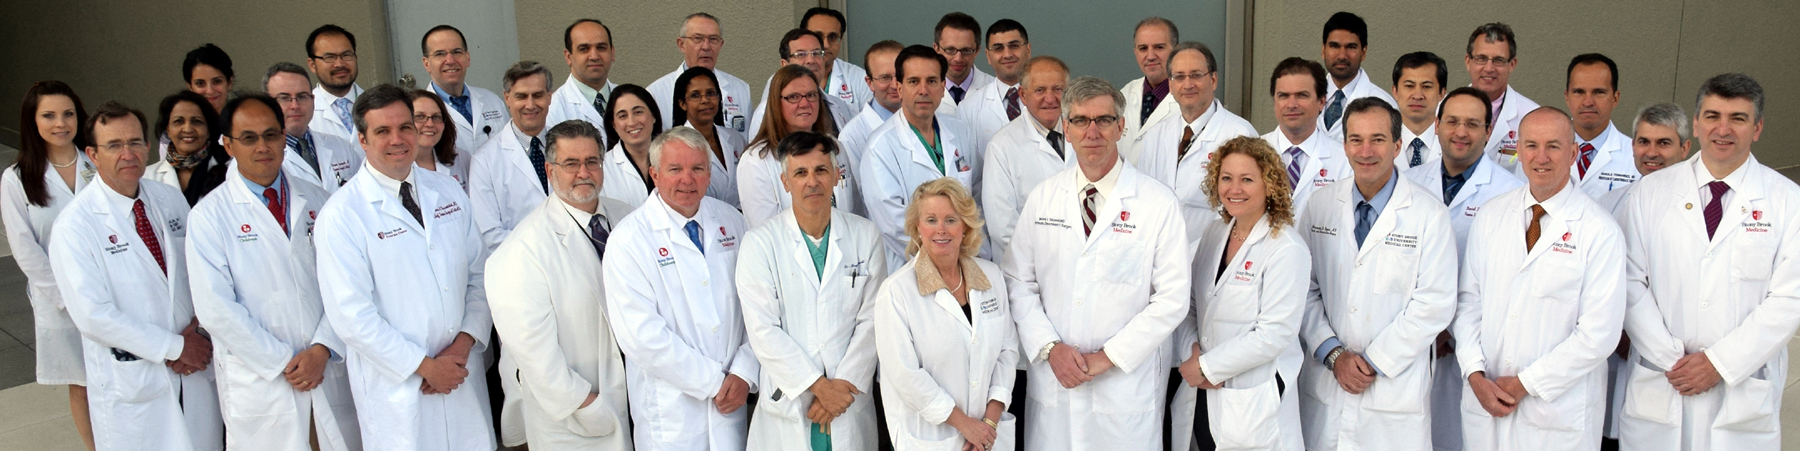 Faculty of the Department of Surgery at Stony Brook Medicine